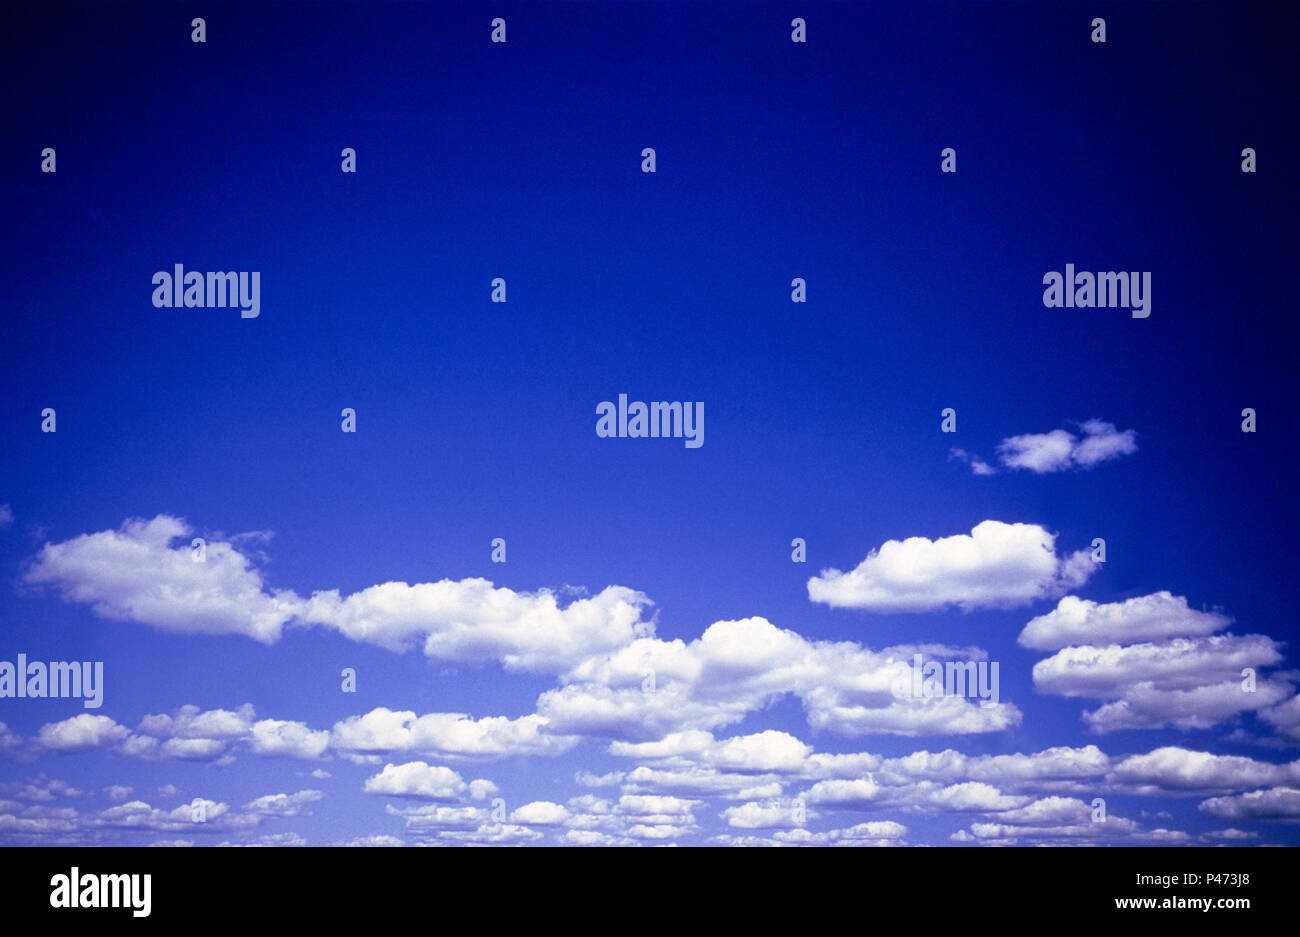 Blue sky with fluffy white clouds - Stock Image